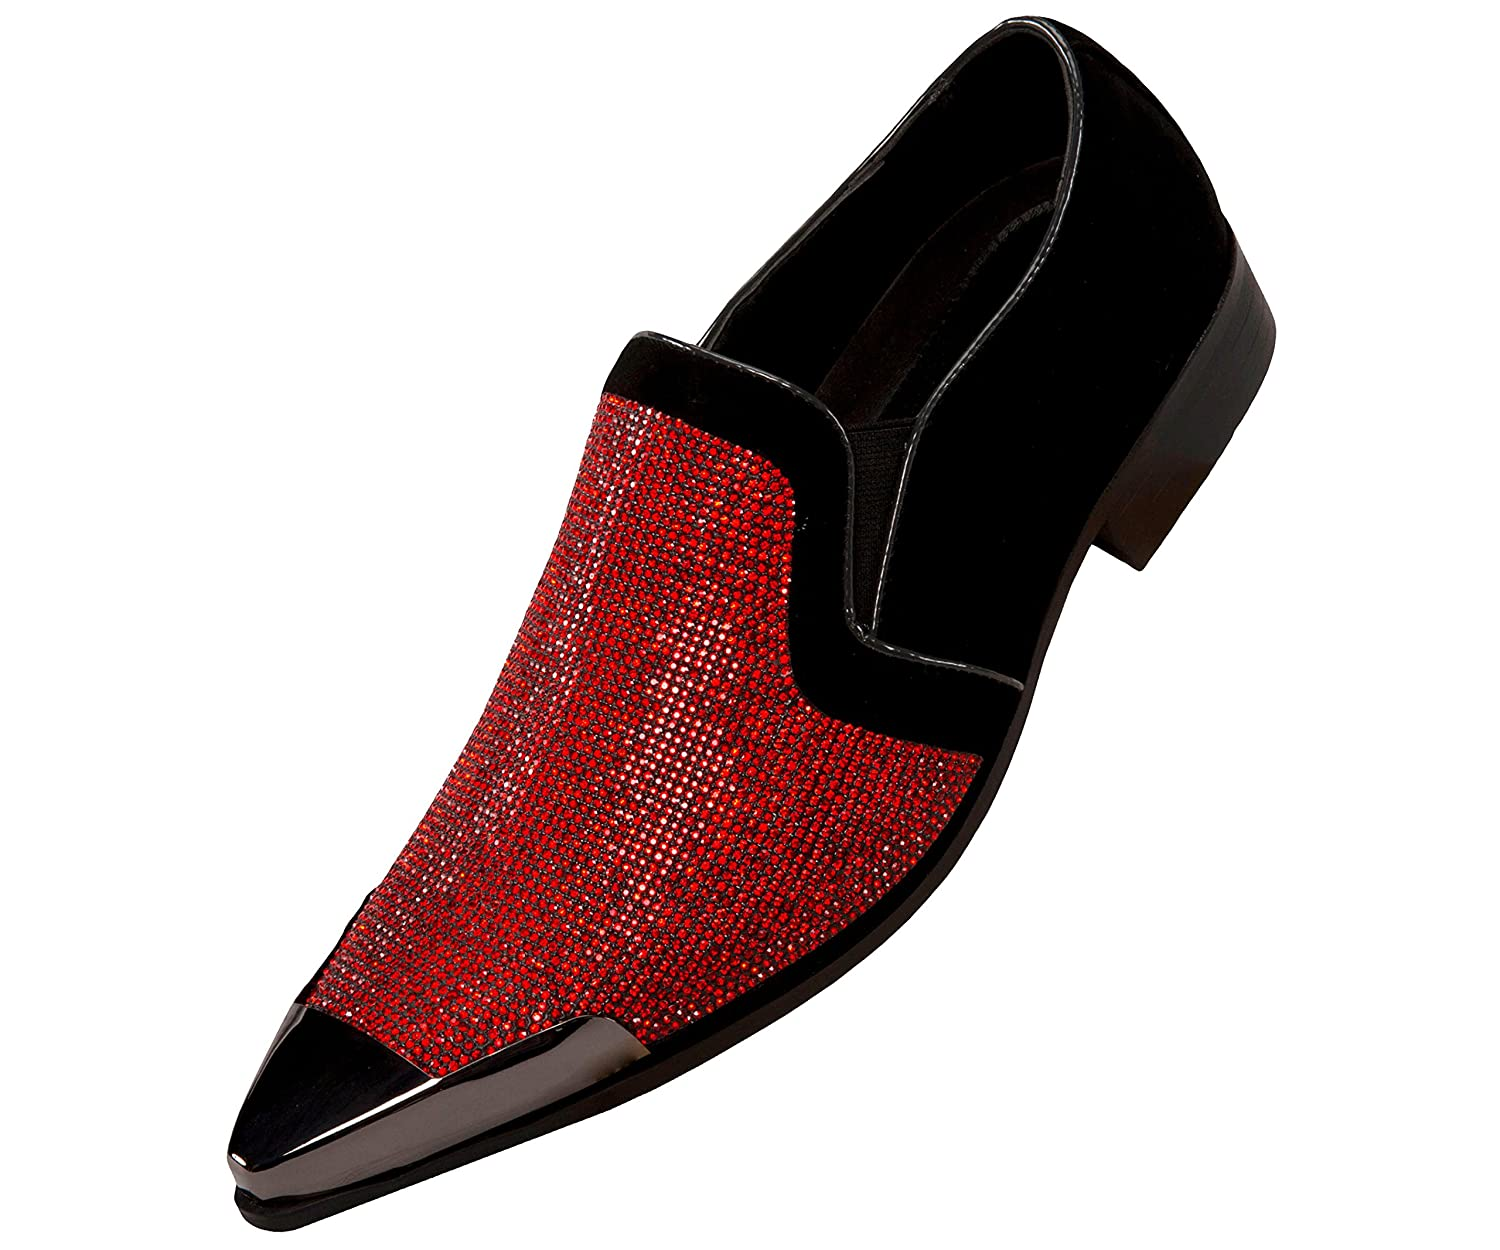 Bolano Mens Rhinestone Embellished and Faux Suede Trim with Metal Tip Dress Shoe, Comfortable Slip-On B07B1R3Y1L 13 D(M) US|Black/Red